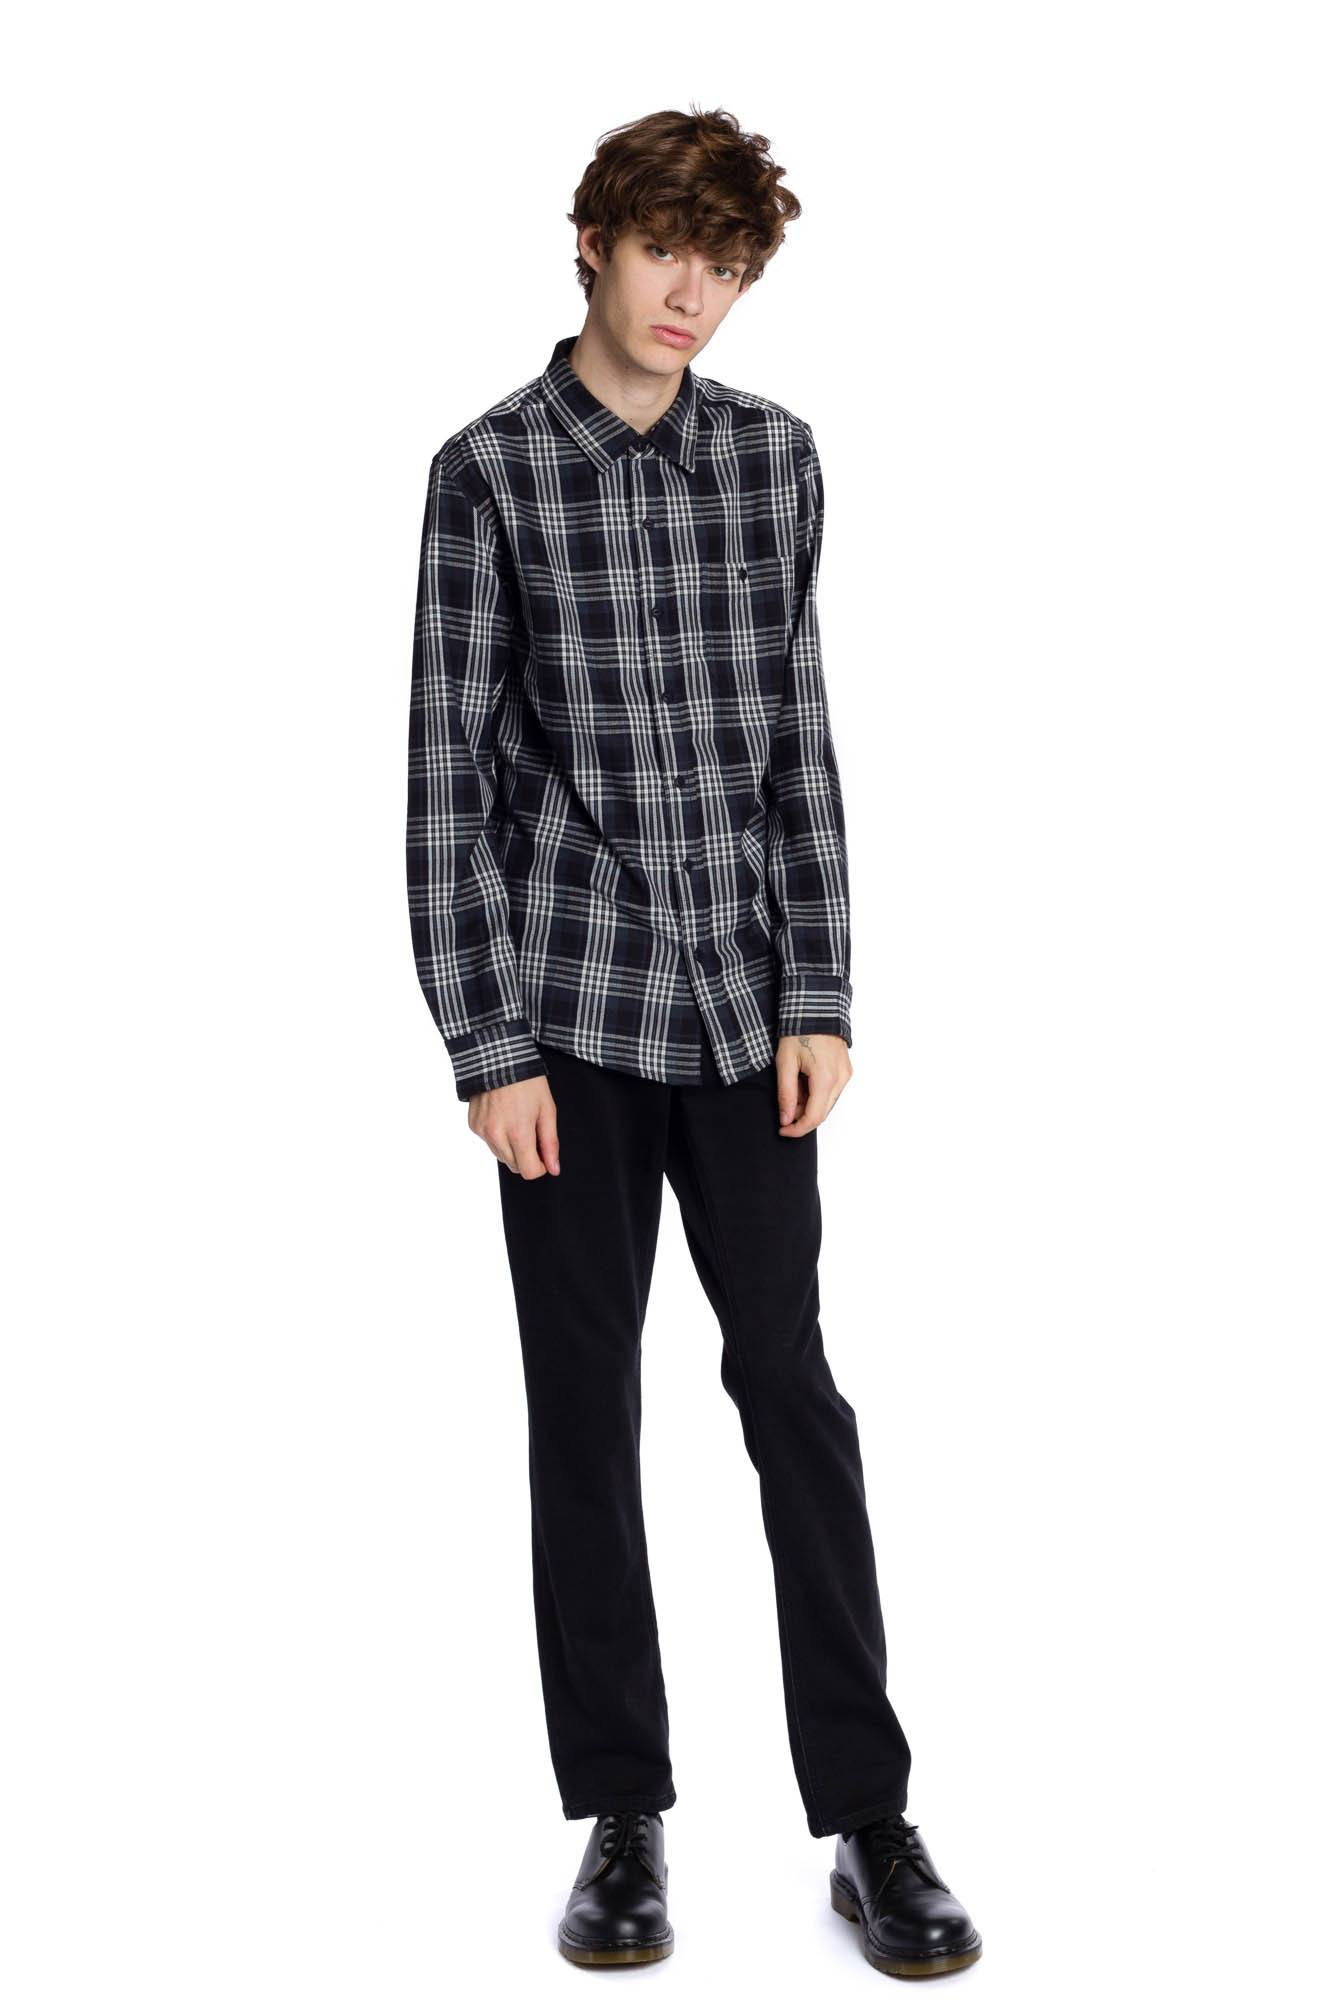 Harris Long Sleeve Shirt - Black